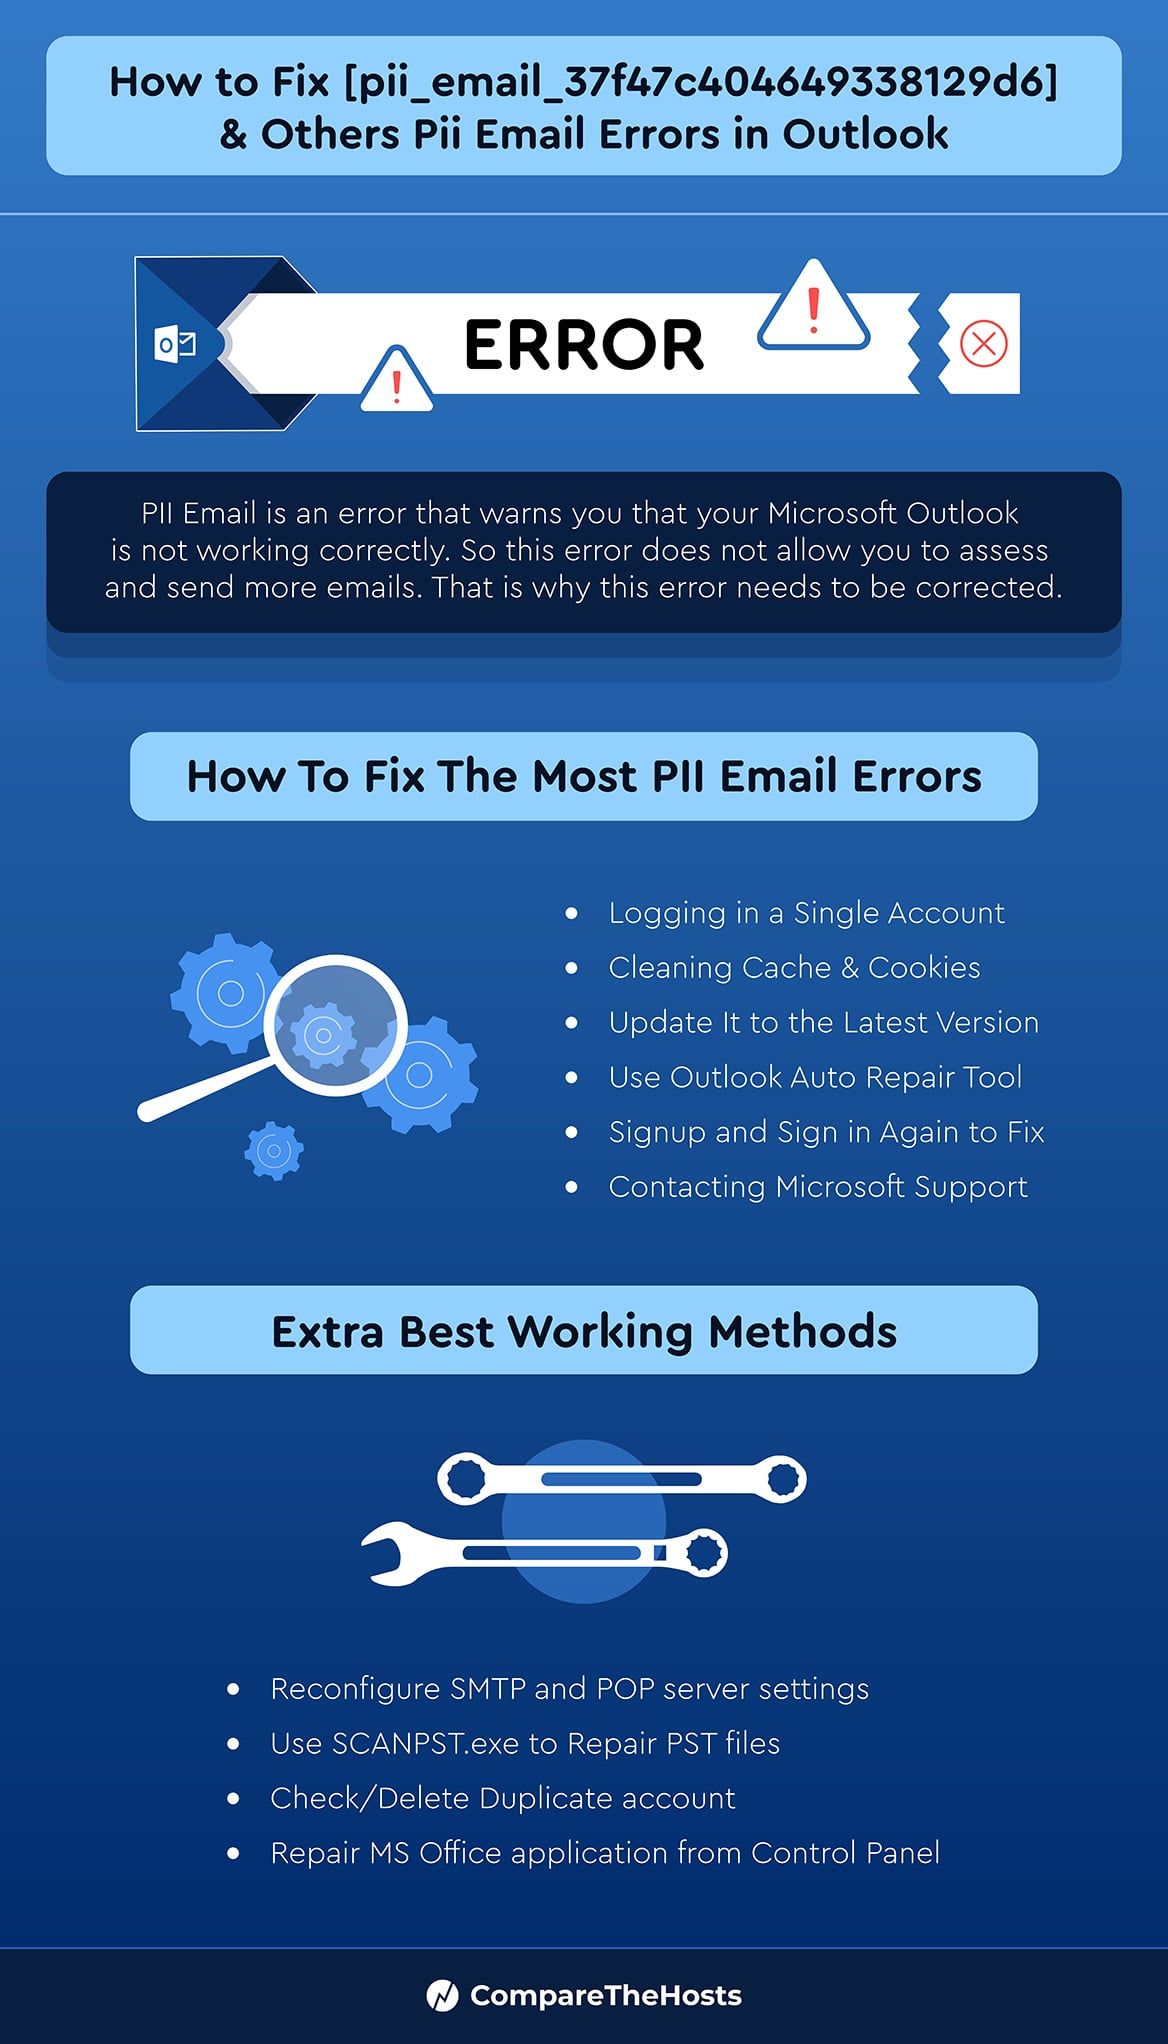 How To Fix PII Email Error Infographic